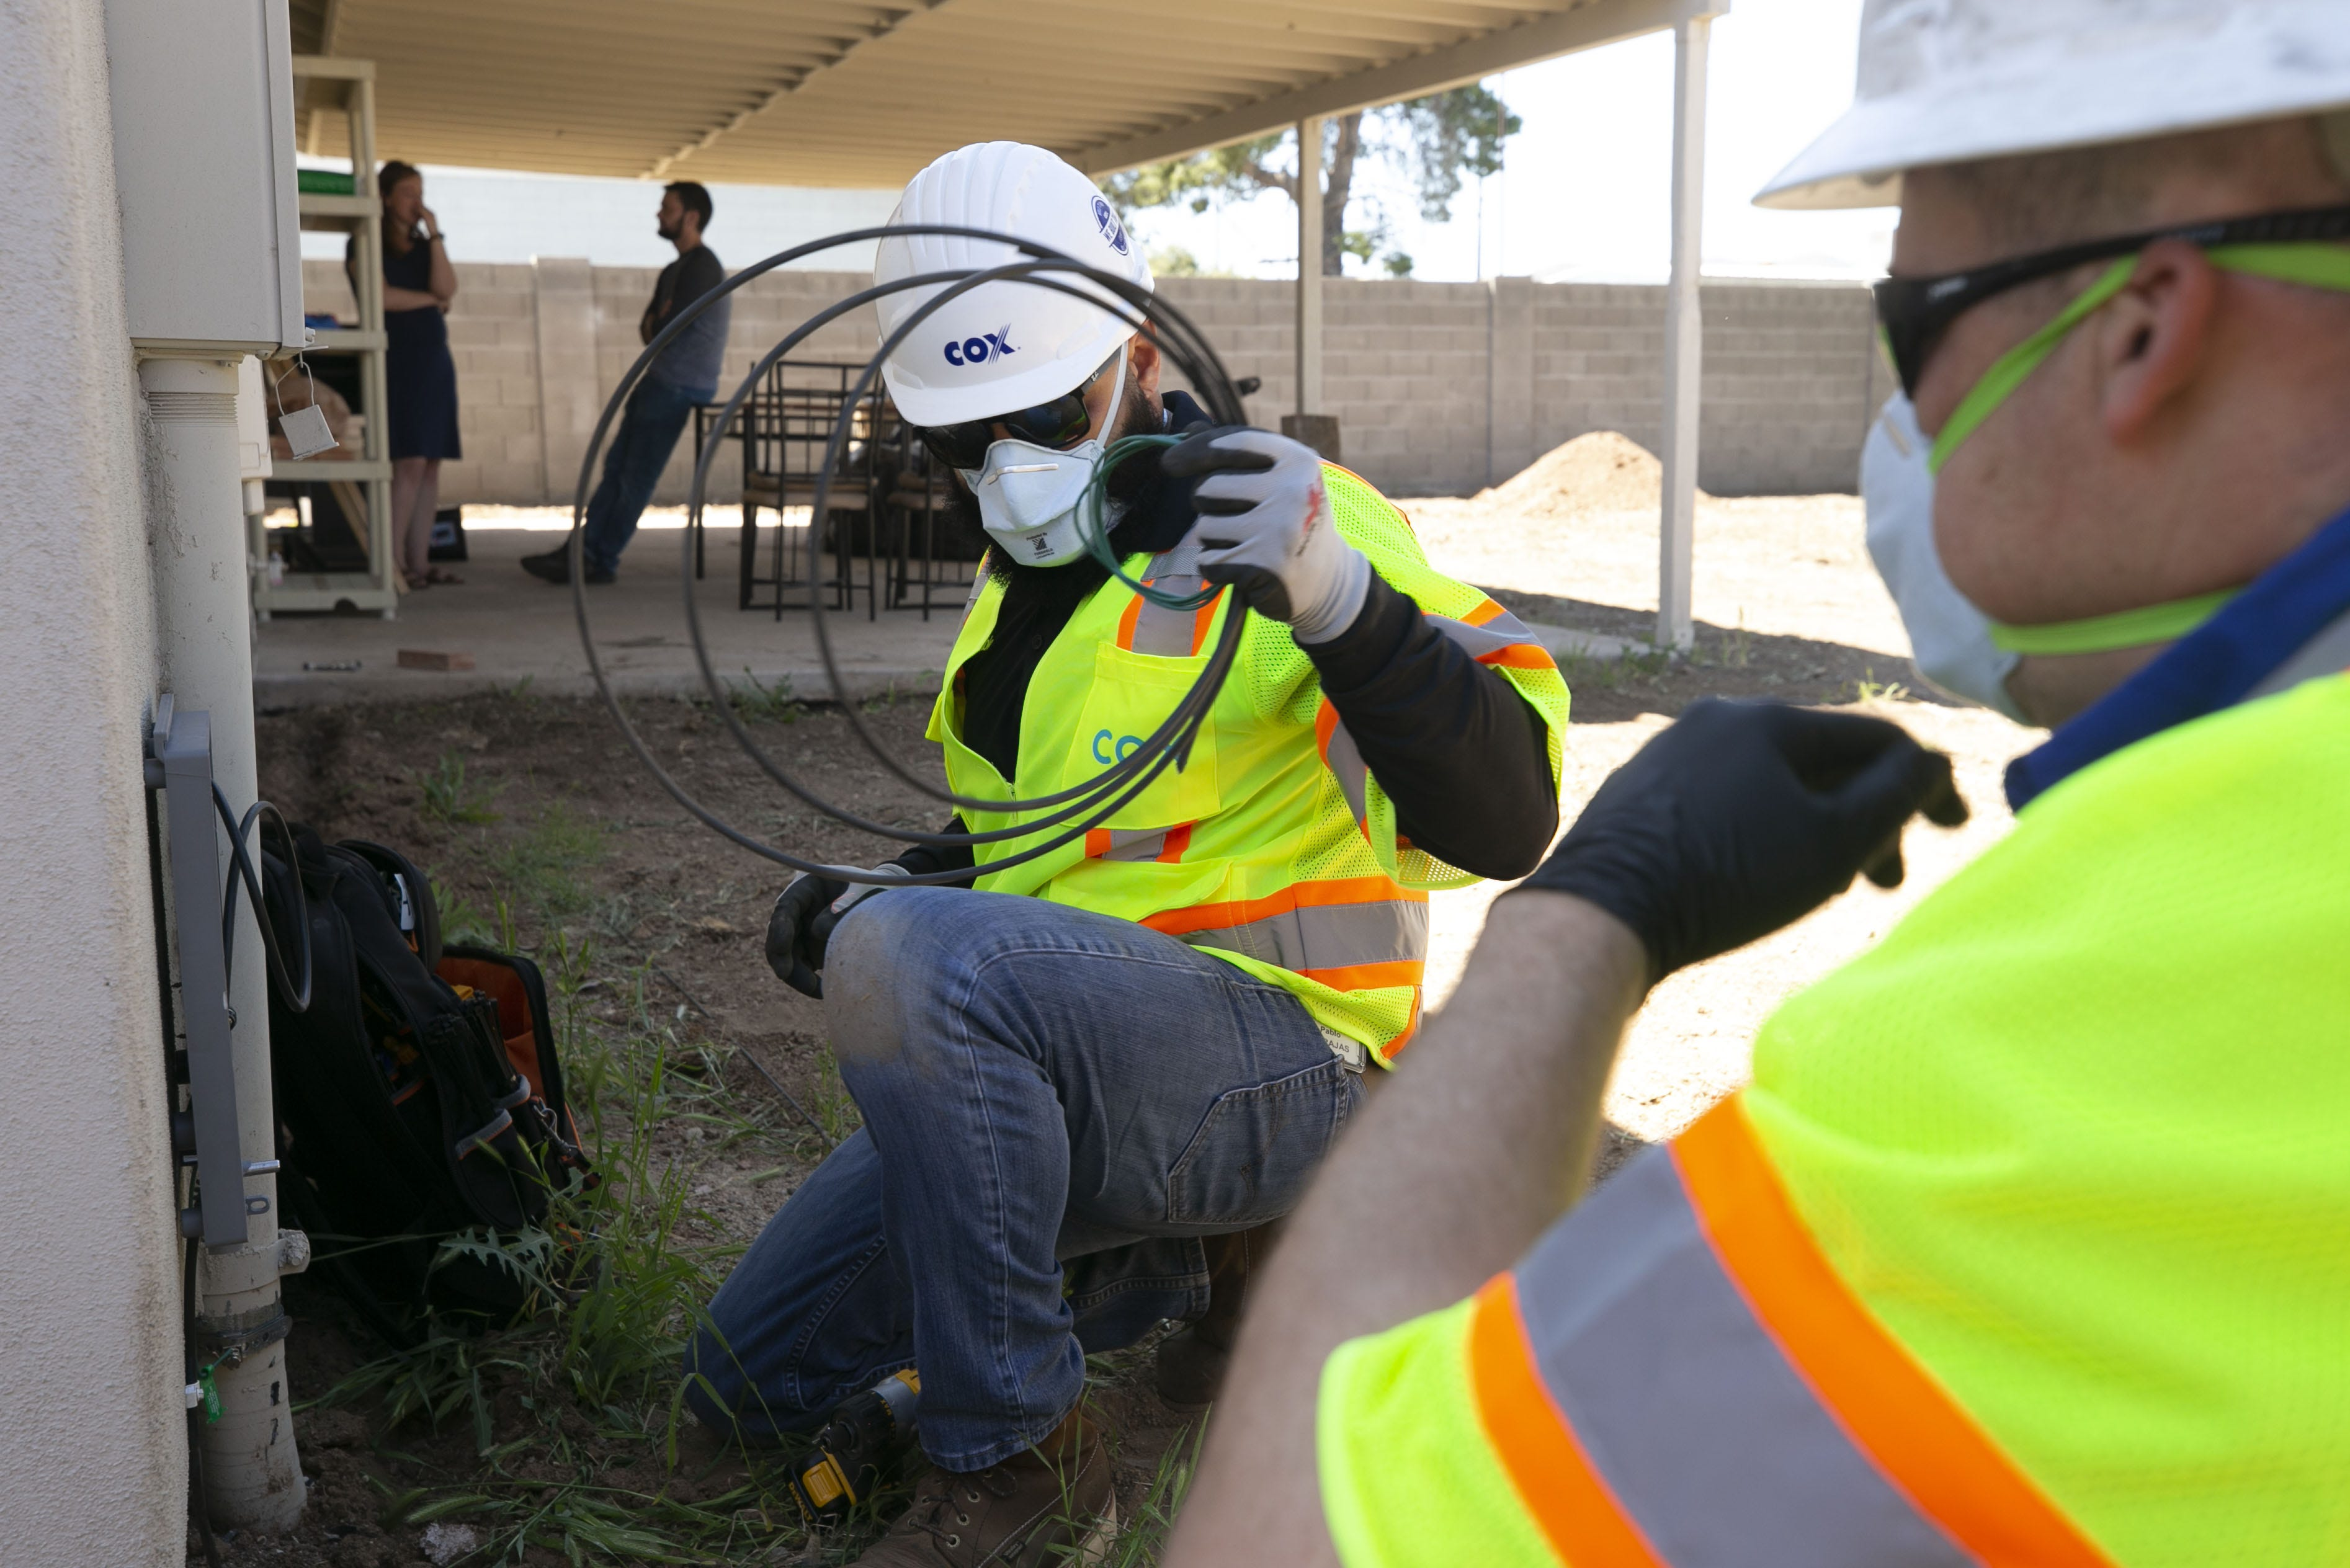 Pablo Barajas (center) and Brandon Petersen, both with Cox Communications, install internet at the Phoenix home of Tyler and Alex Palmer (background) on April 15, 2020. Cox Communications installers have changed how they do their jobs and avoid entering customers' homes in almost all situations because of the new coronavirus pandemic. The Palmers moved into their home in mid-March and have been without internet since.Cable Internet Service Coronavirus Covid 19